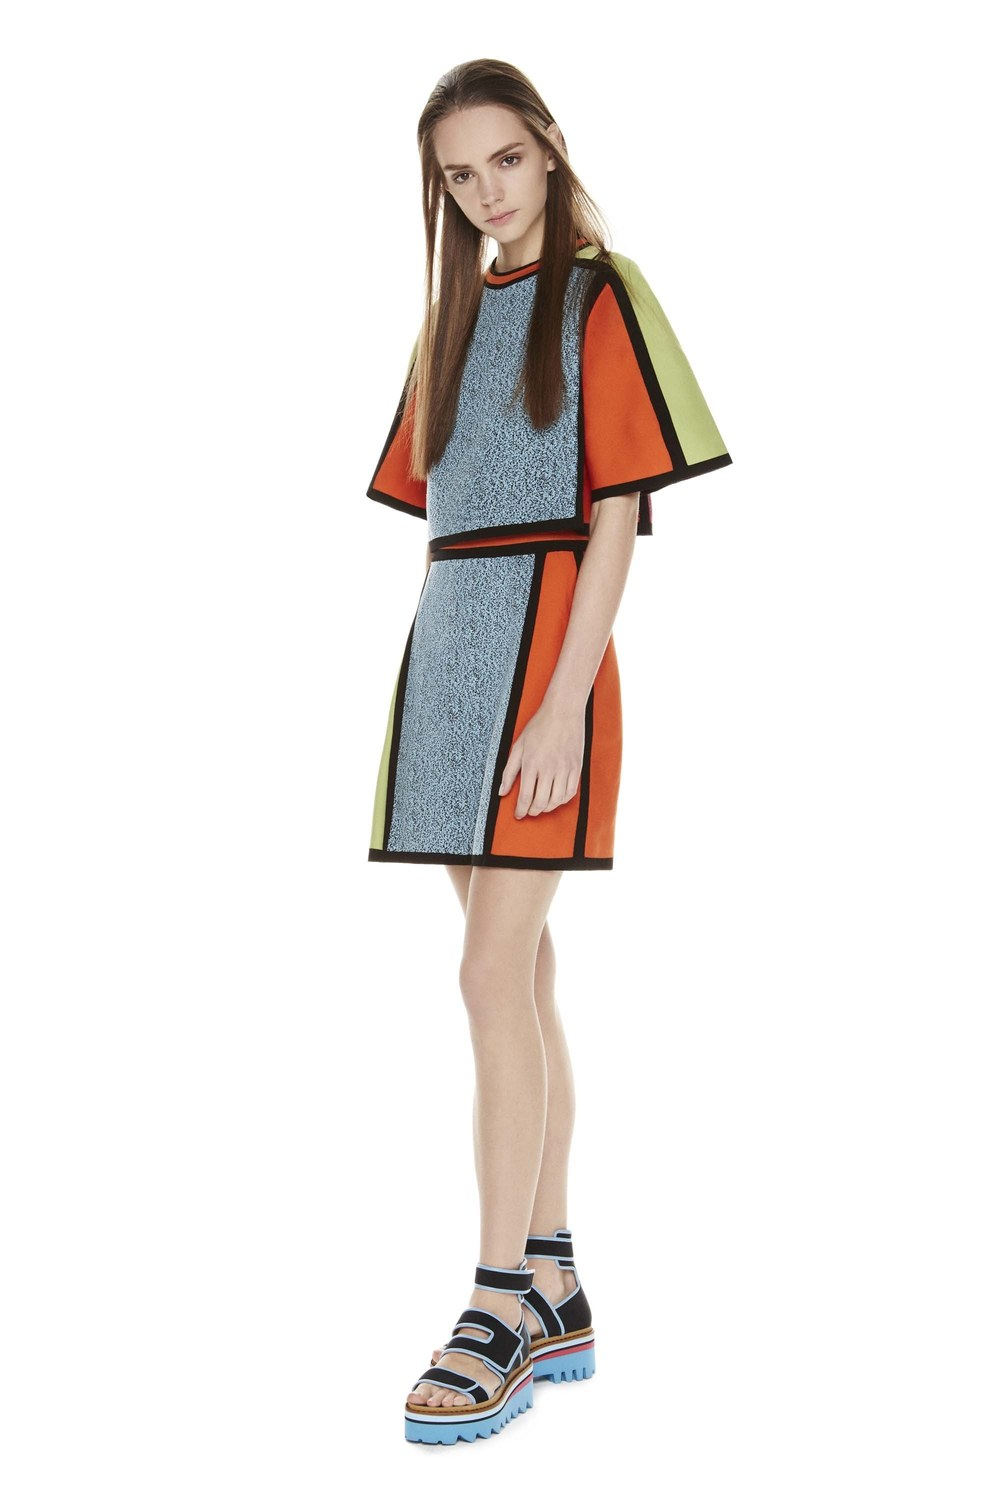 M Missoni; image via